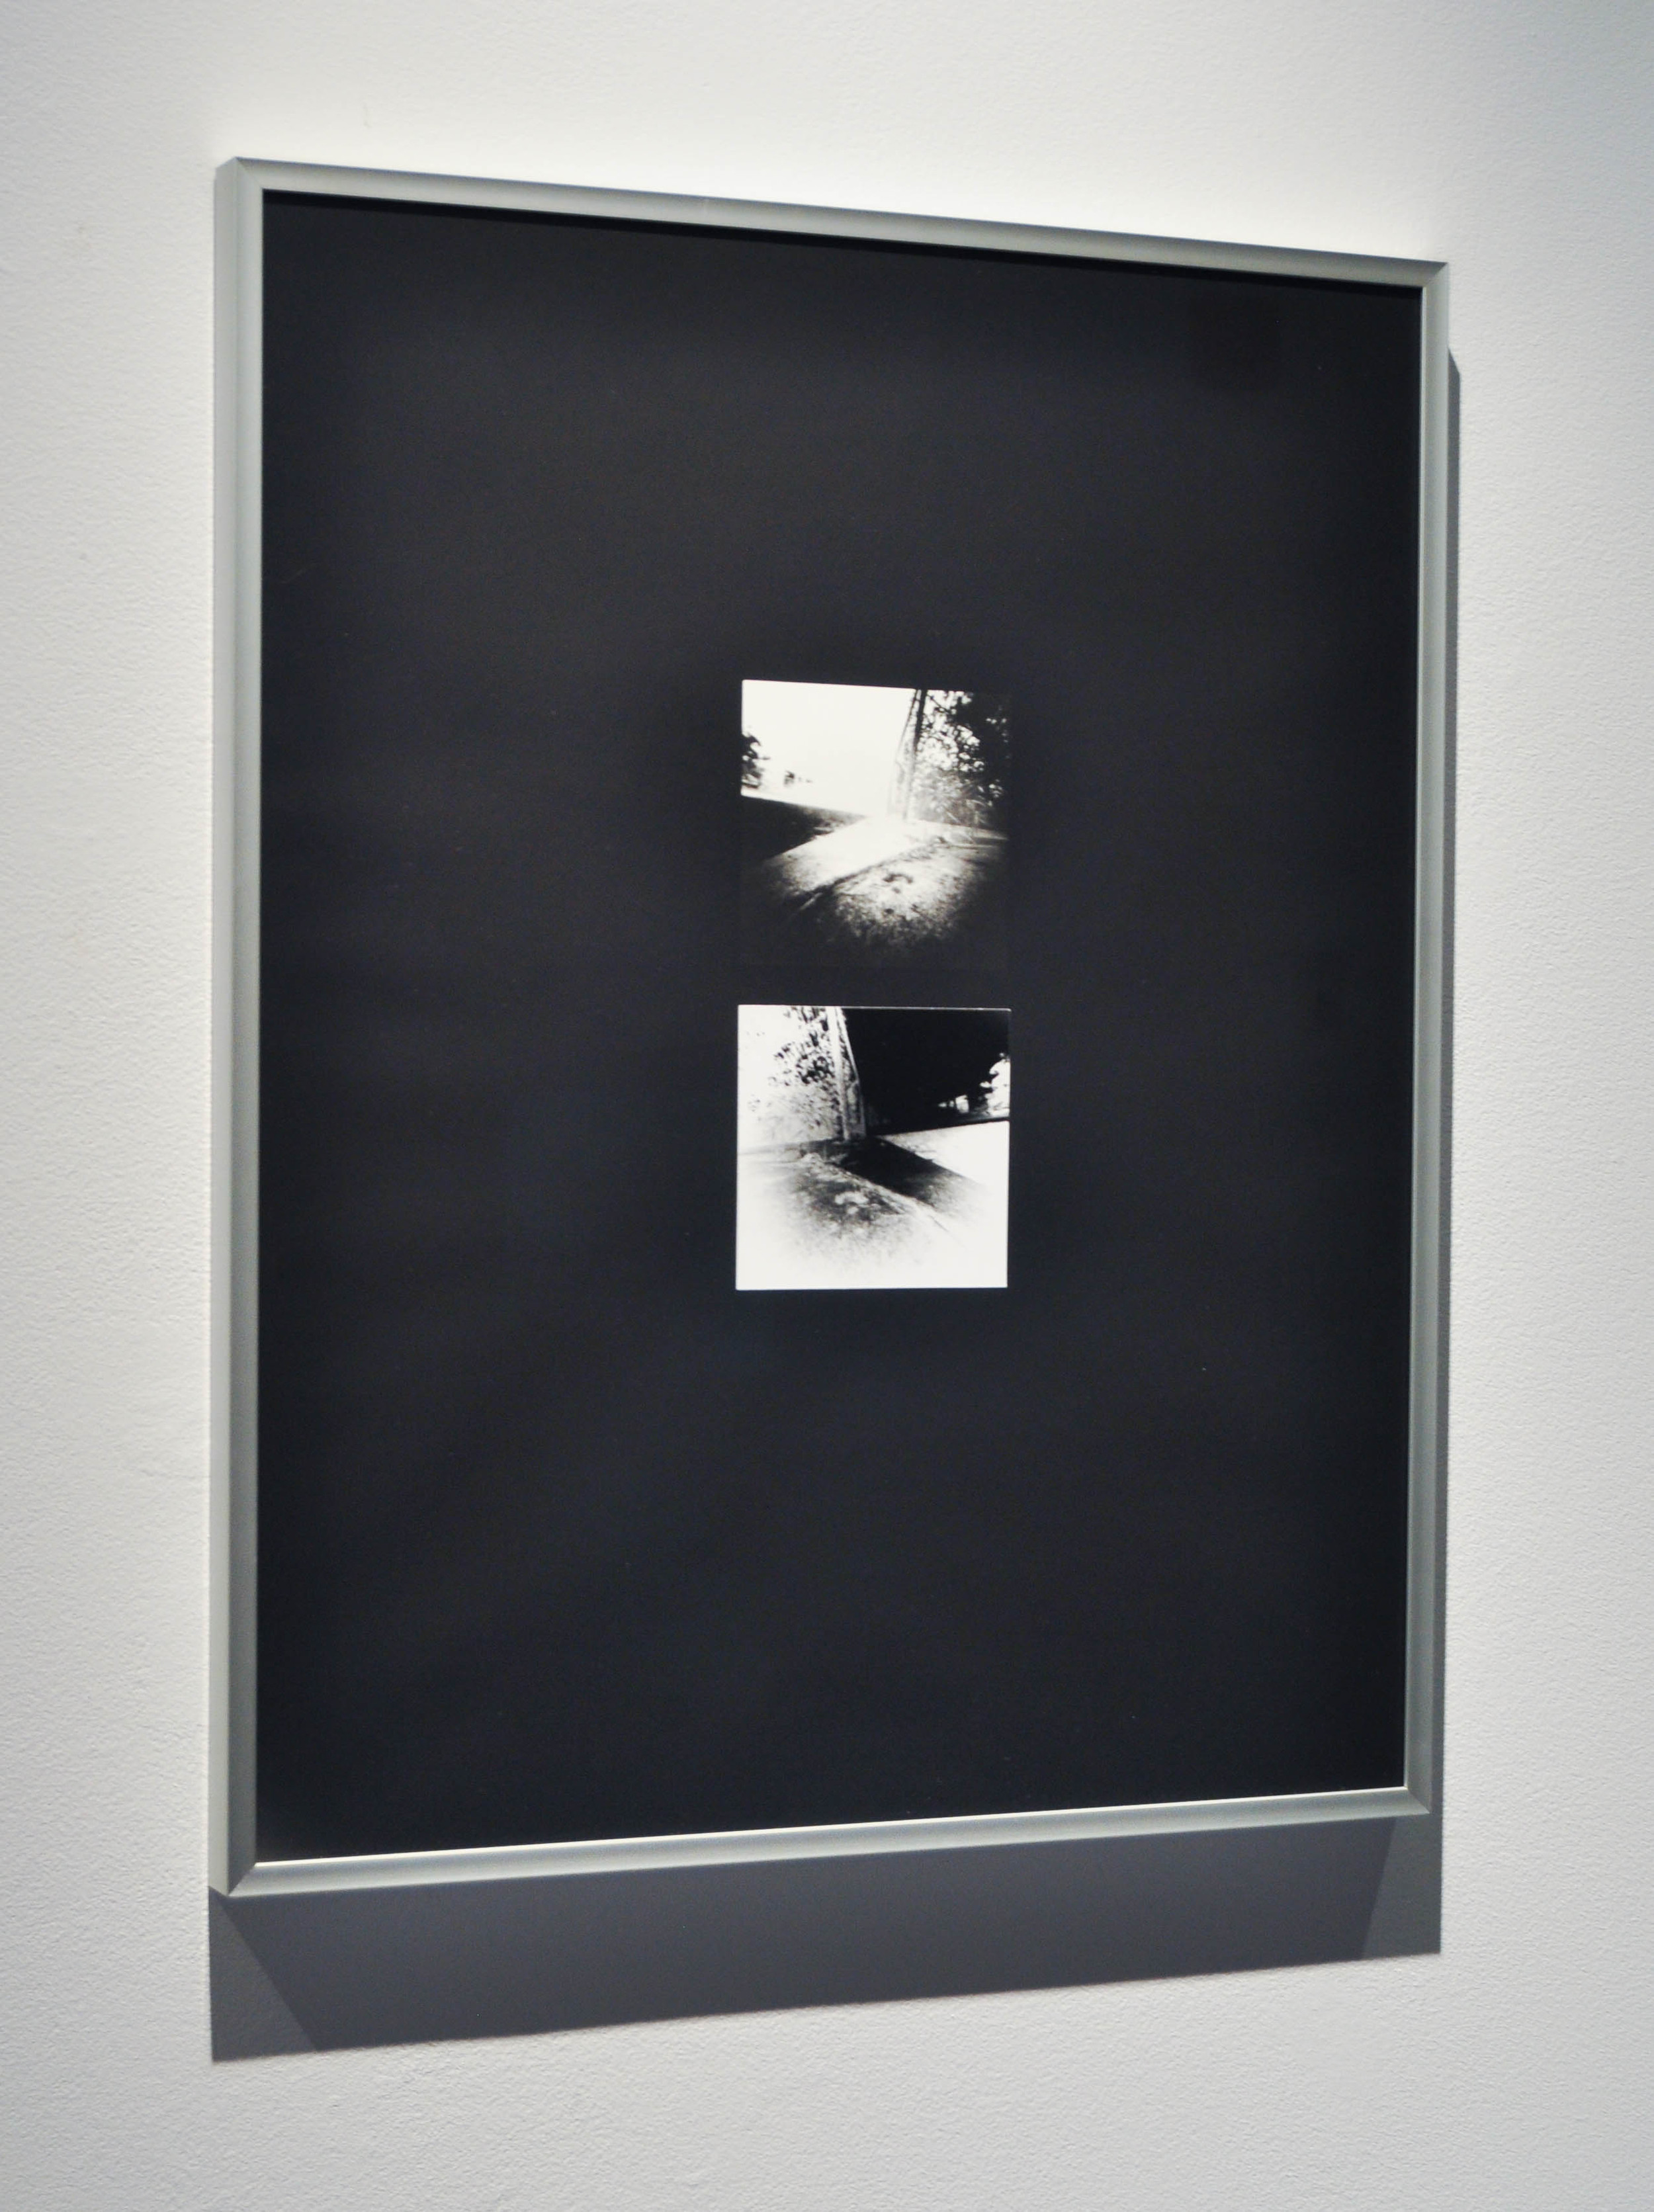 """Fragments Re-Imagined (Installation View),  16x20"""",    Fragments Re-Imagined (Installation View), 11x14""""(4), 16x20""""(3),Silver gelatin prints, 2014, Mallory Donen, UFV Building C, Room C1401, Abbotsford, BC"""